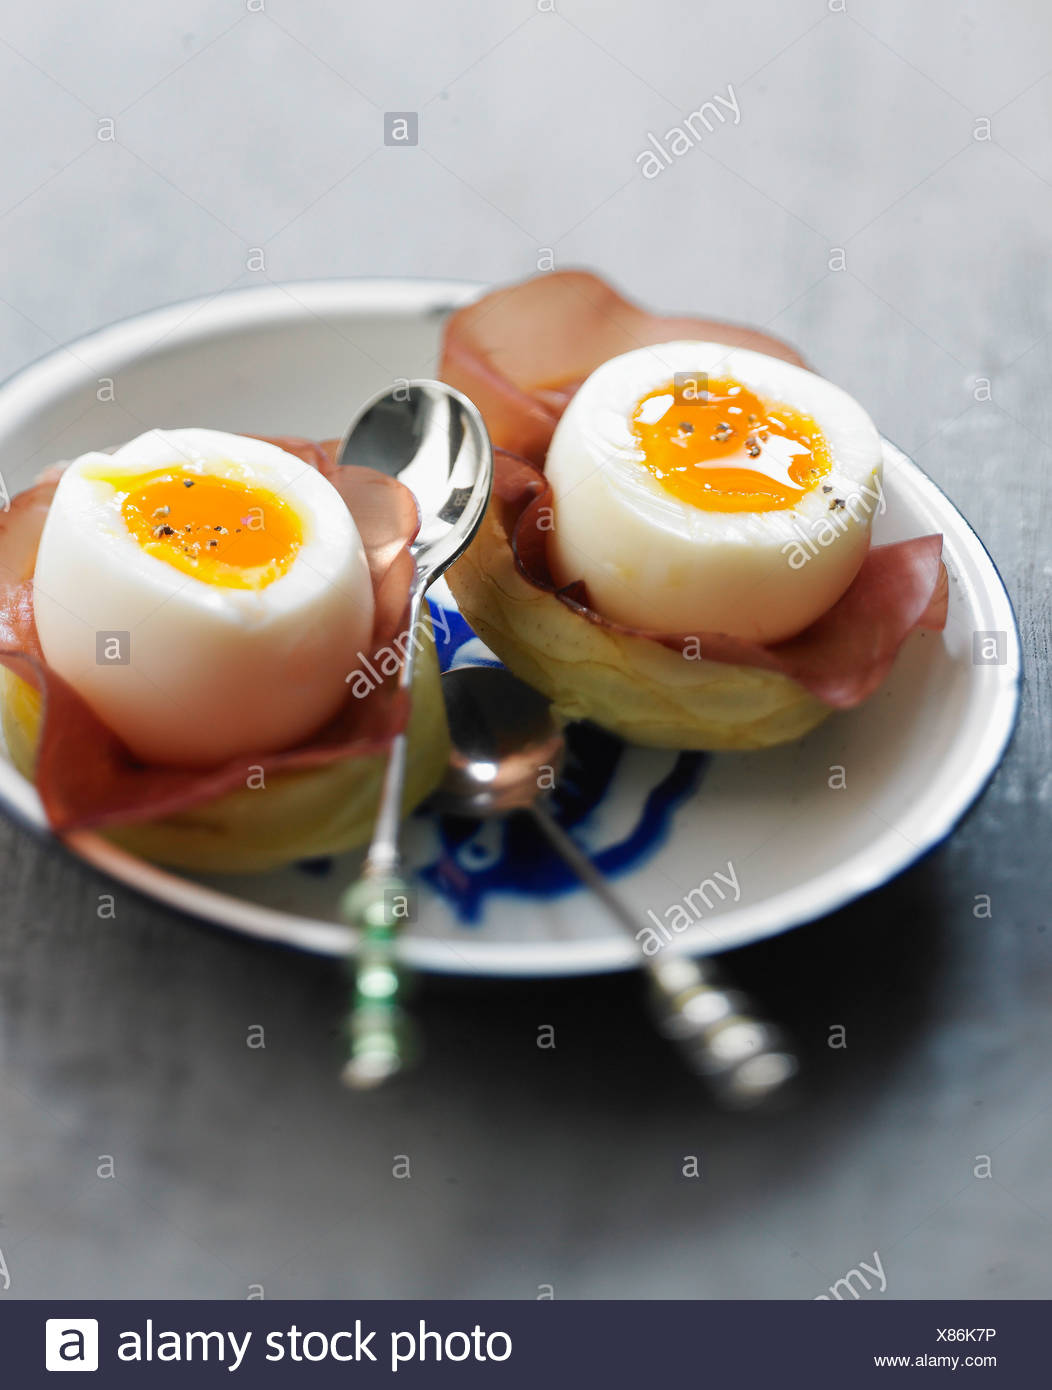 Soft-boiled eggs on artichoke bases with grisons meat - Stock Image